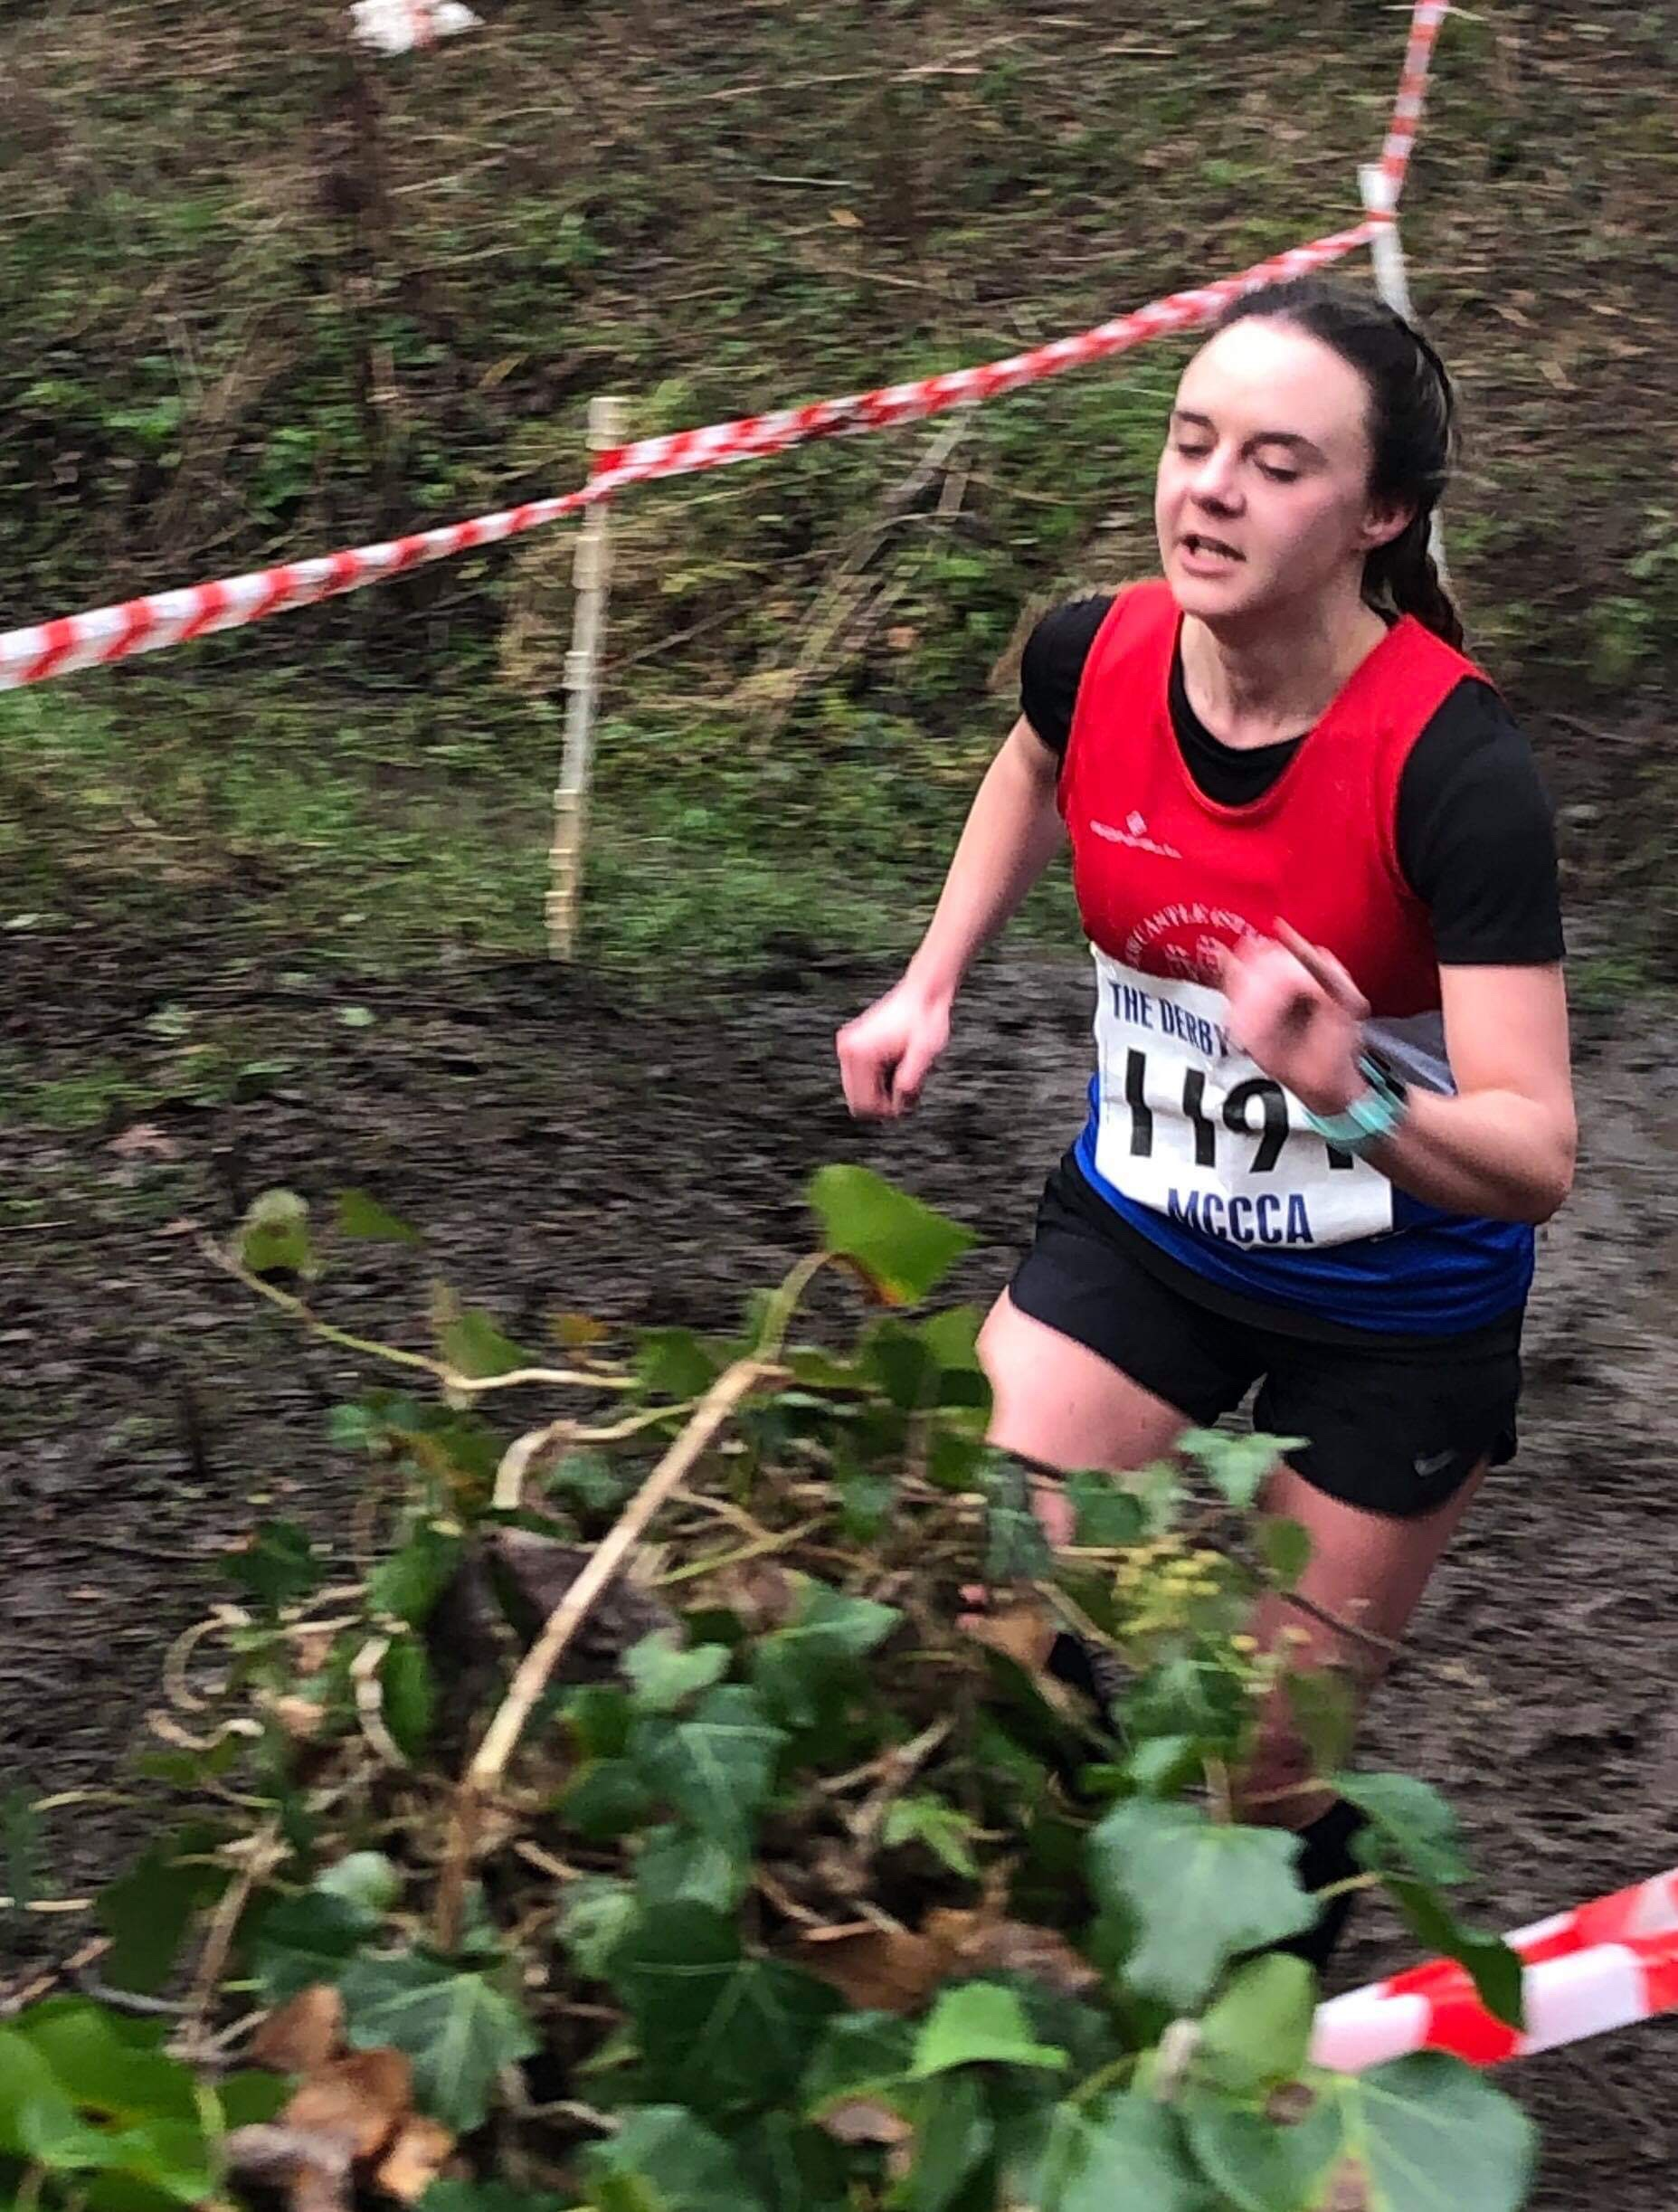 Midlands XC Championships 2019 at Newbold Comwyn, Leamington Spa.